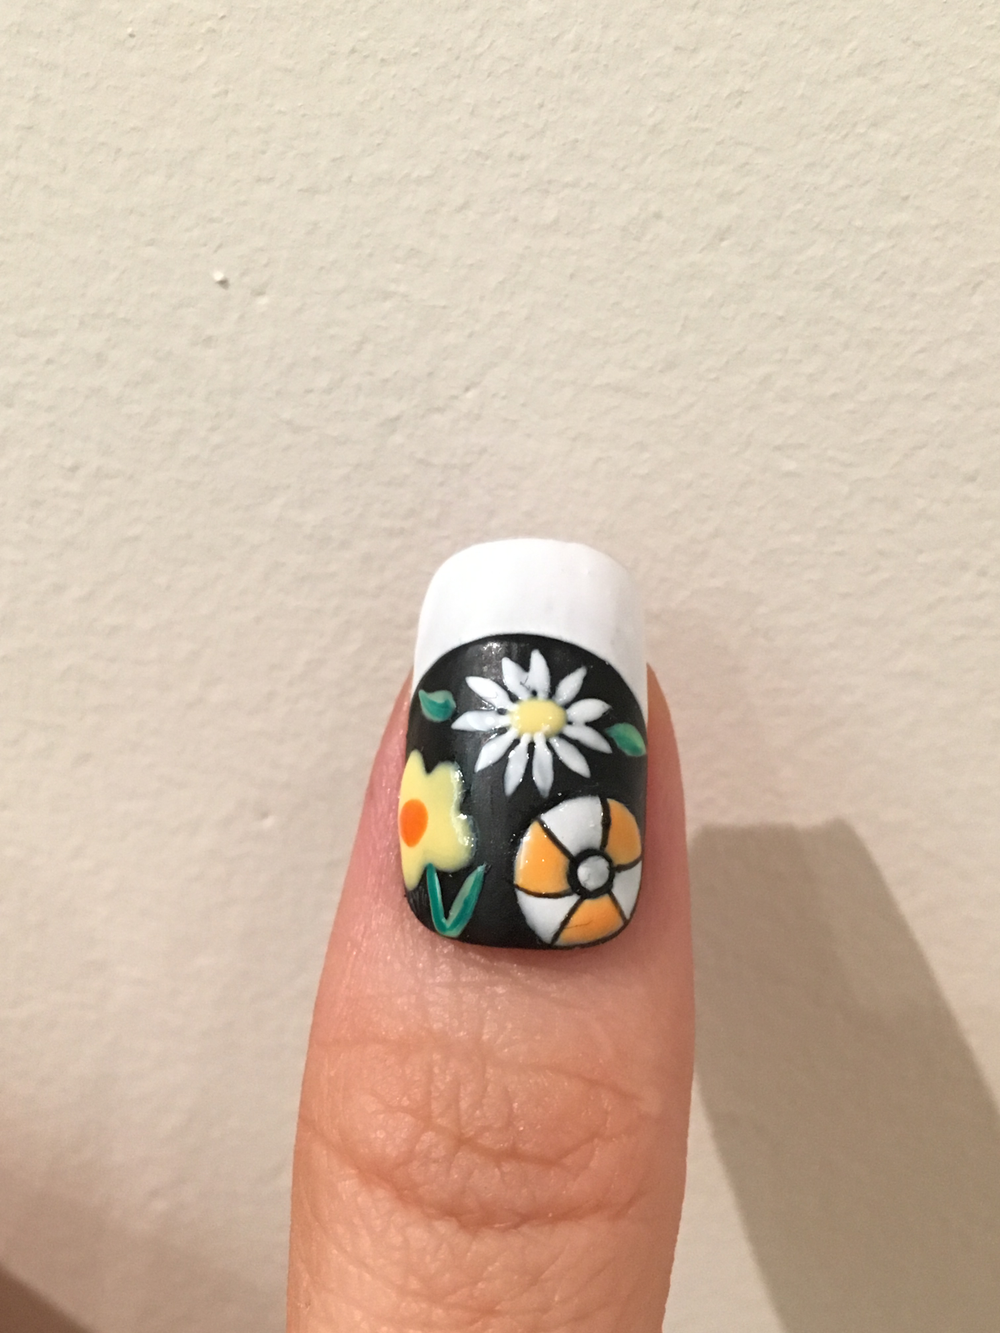 Add leaves using green polish. Outline the beach ball with black polish.